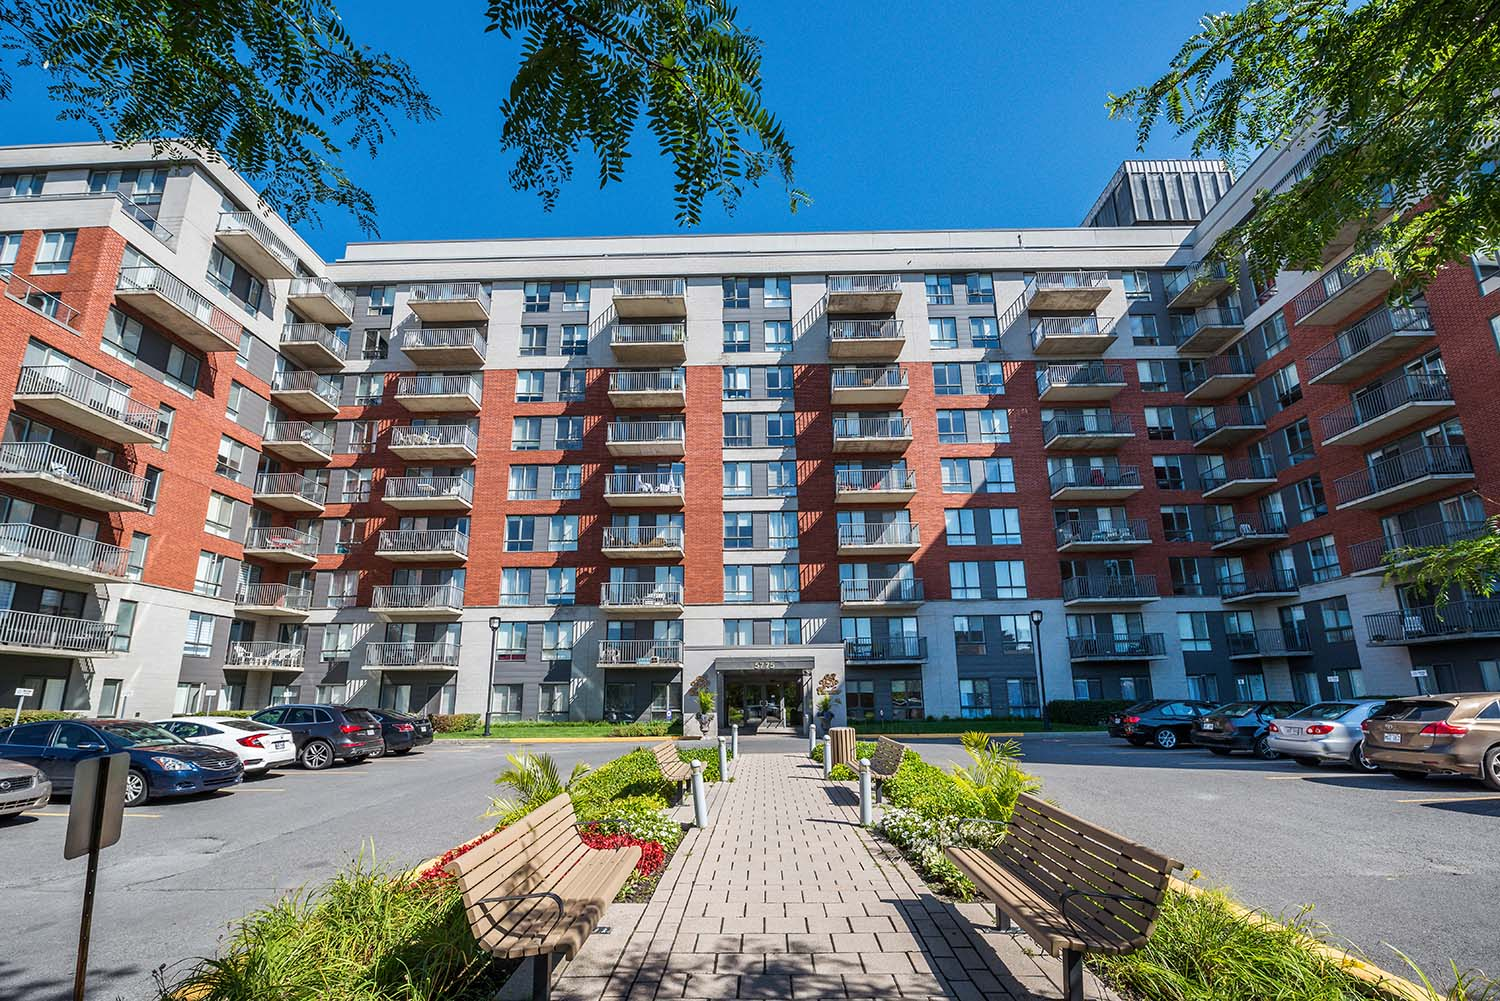 2 bedroom Apartments for rent in Cote-St-Luc at Excelsior - Photo 19 - RentQuebecApartments – L405836